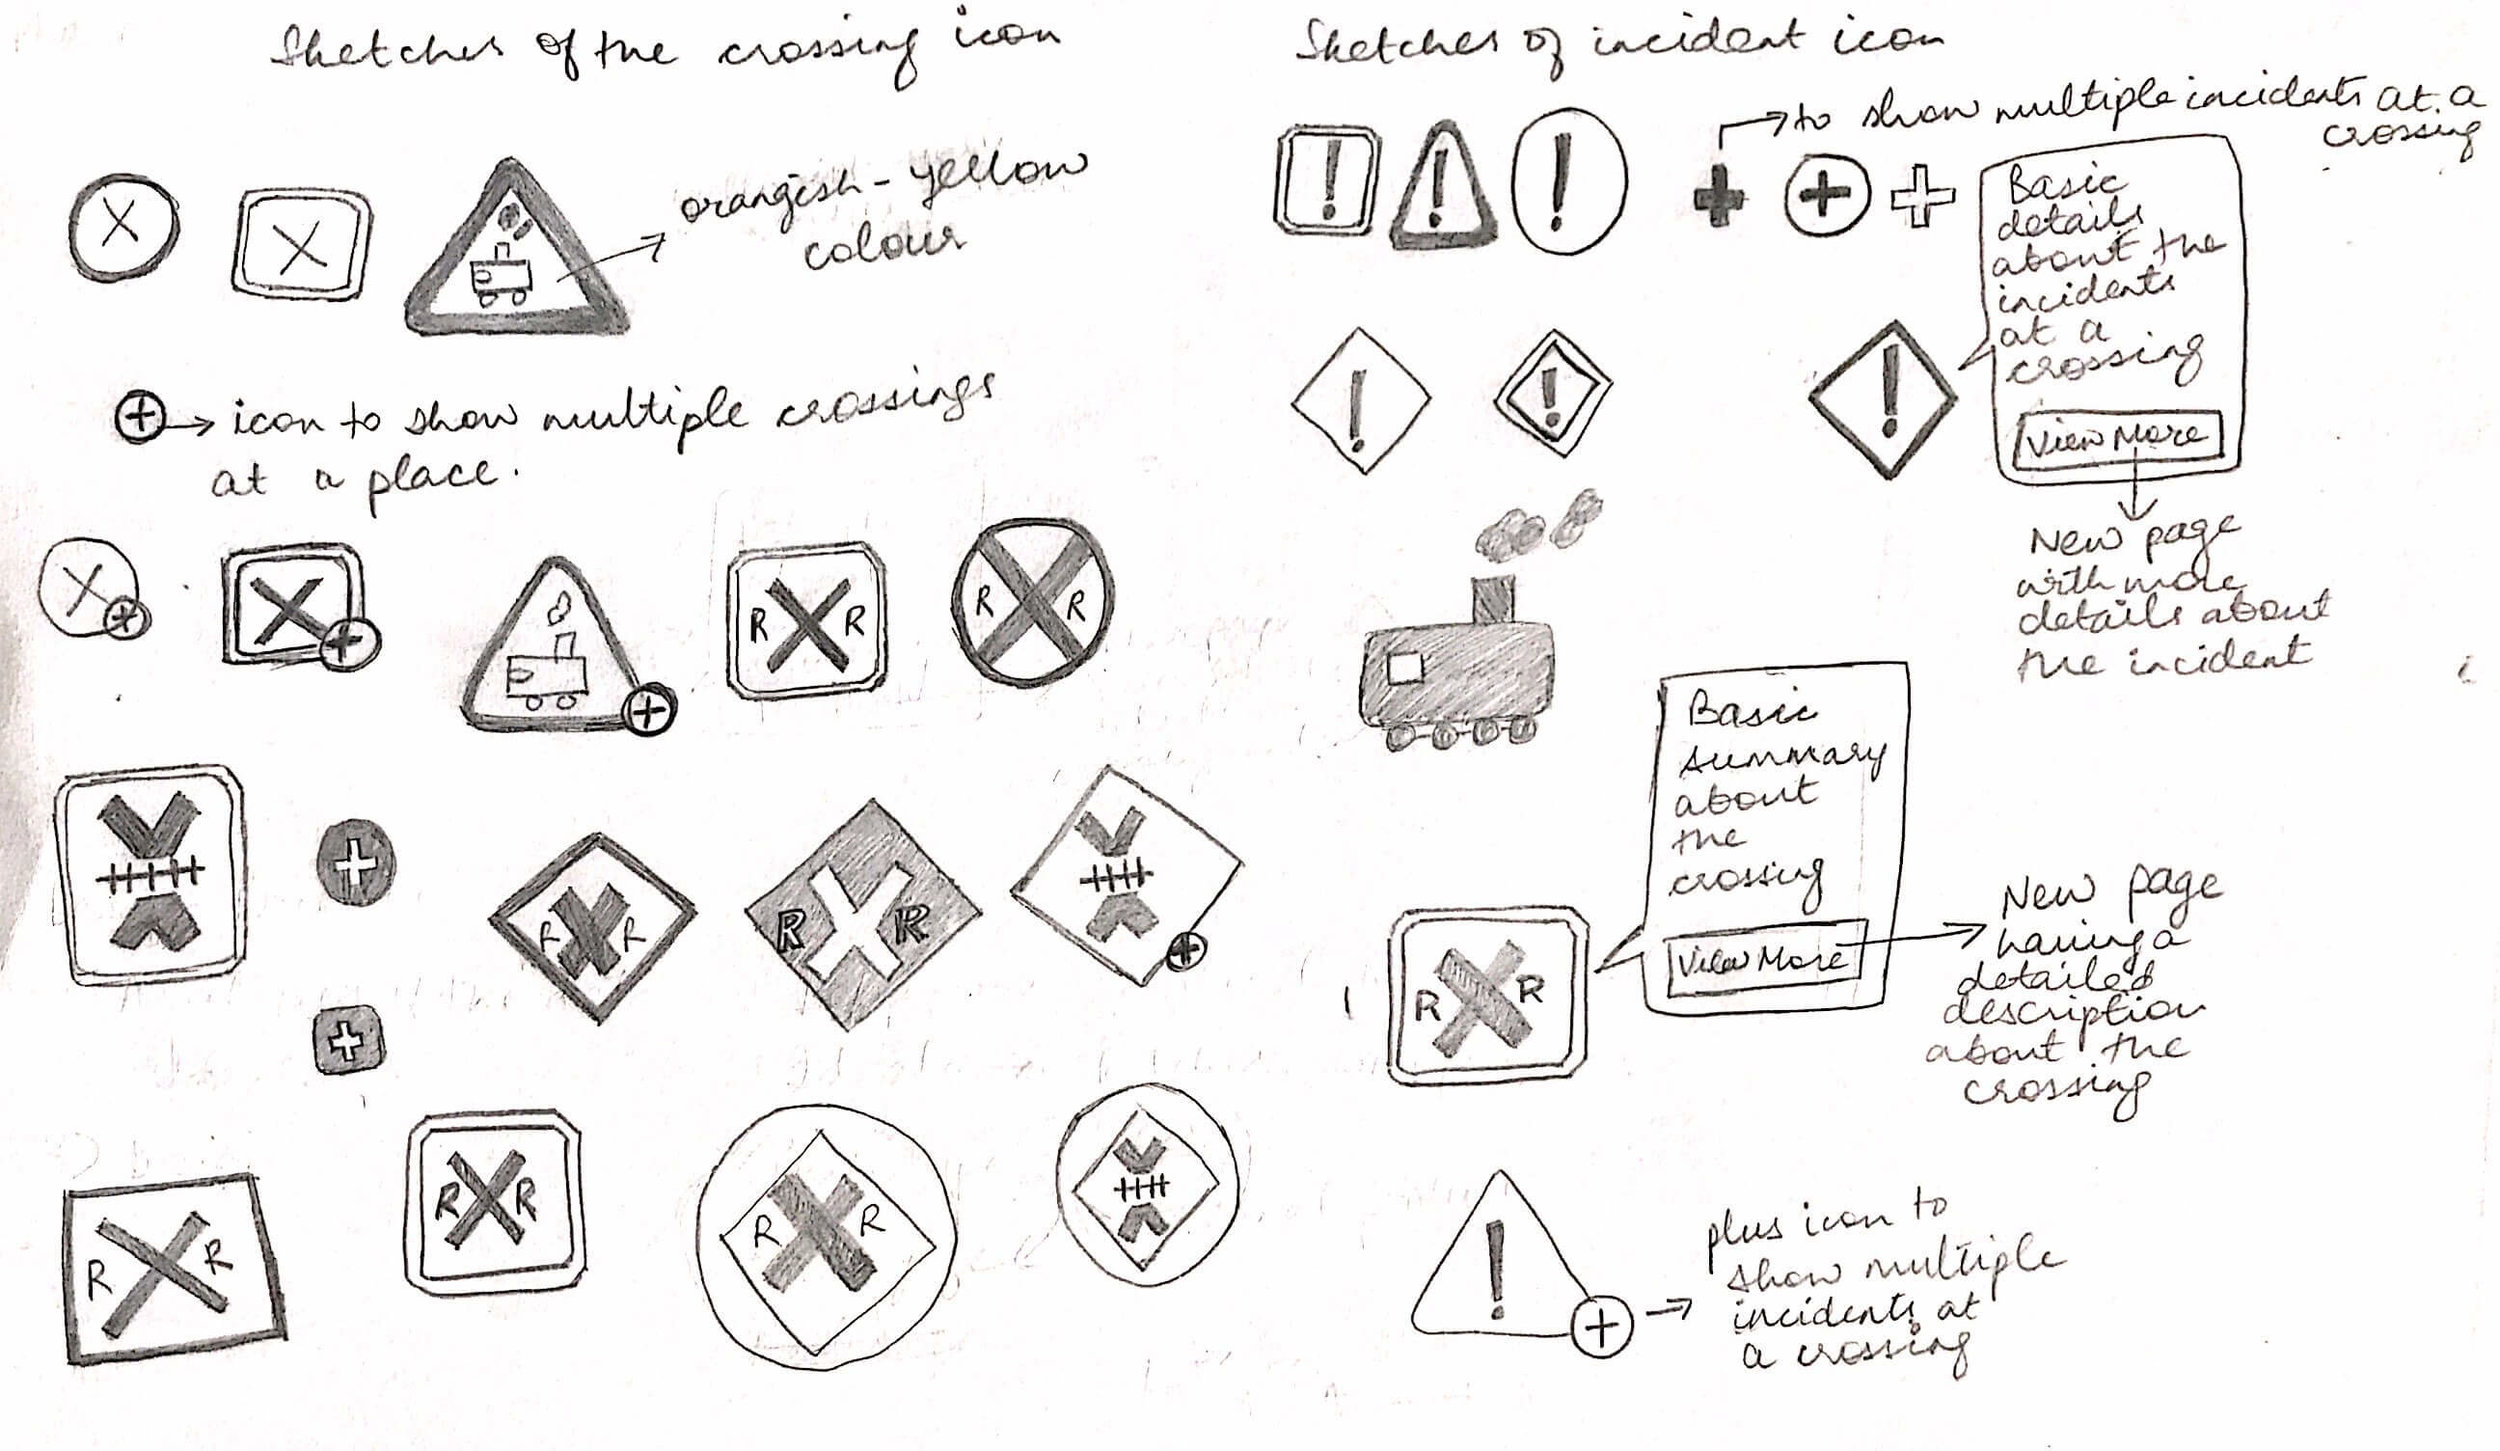 I identified that a railroad crossing and the incidents occurred at a crossing would respectively need to be represented by an icon on the map. I started with first sketching out the icons and then designed them in Adobe Illustrator.